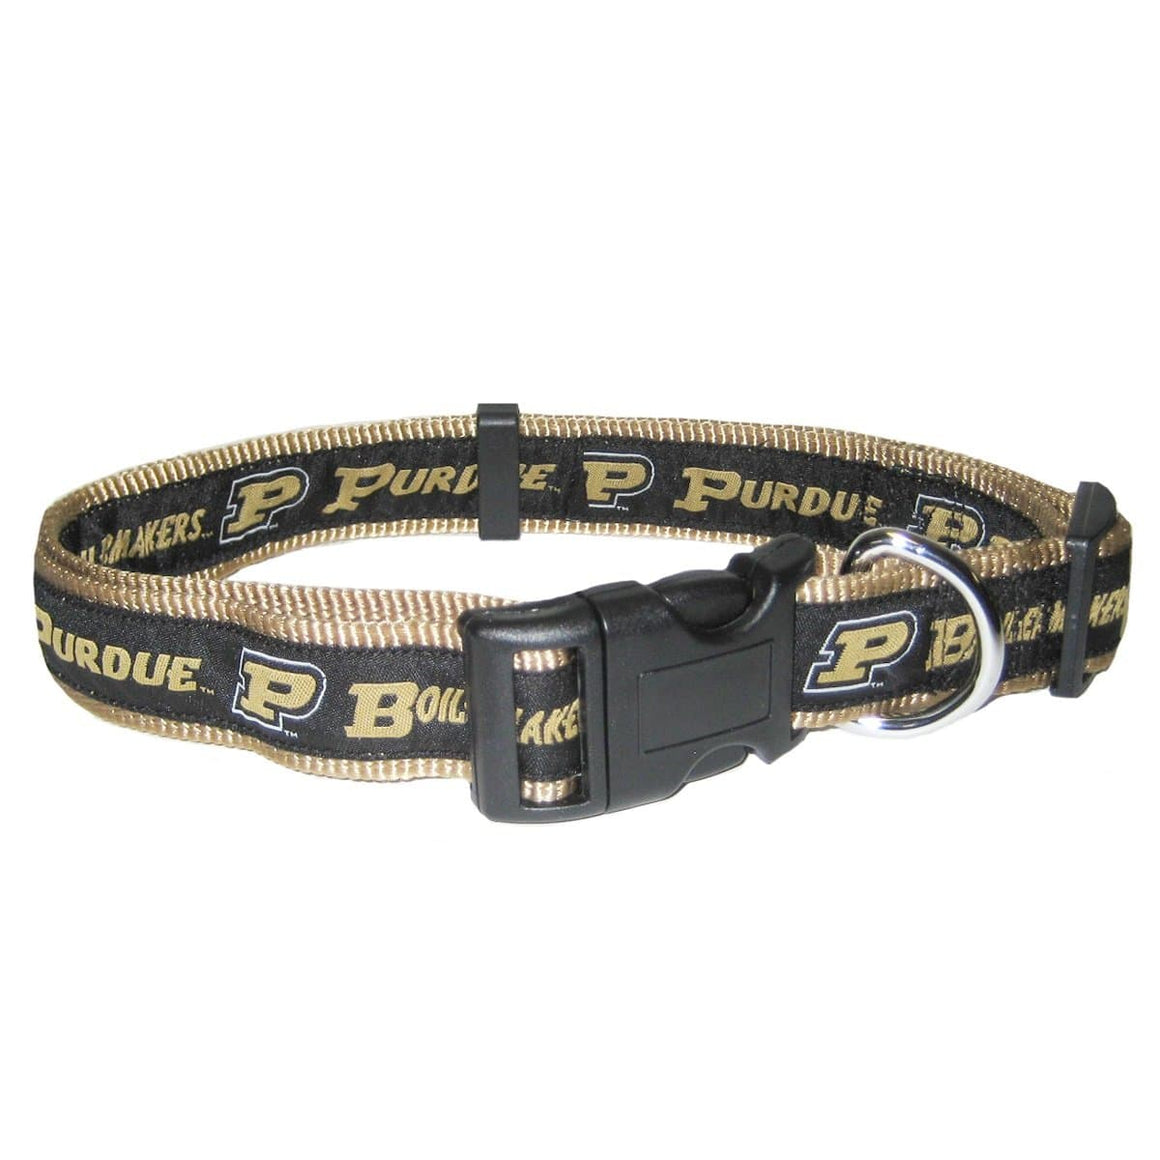 Pets First Dog-products NCAA Medium Purdue Boilermakers Pet Collar By Pets First